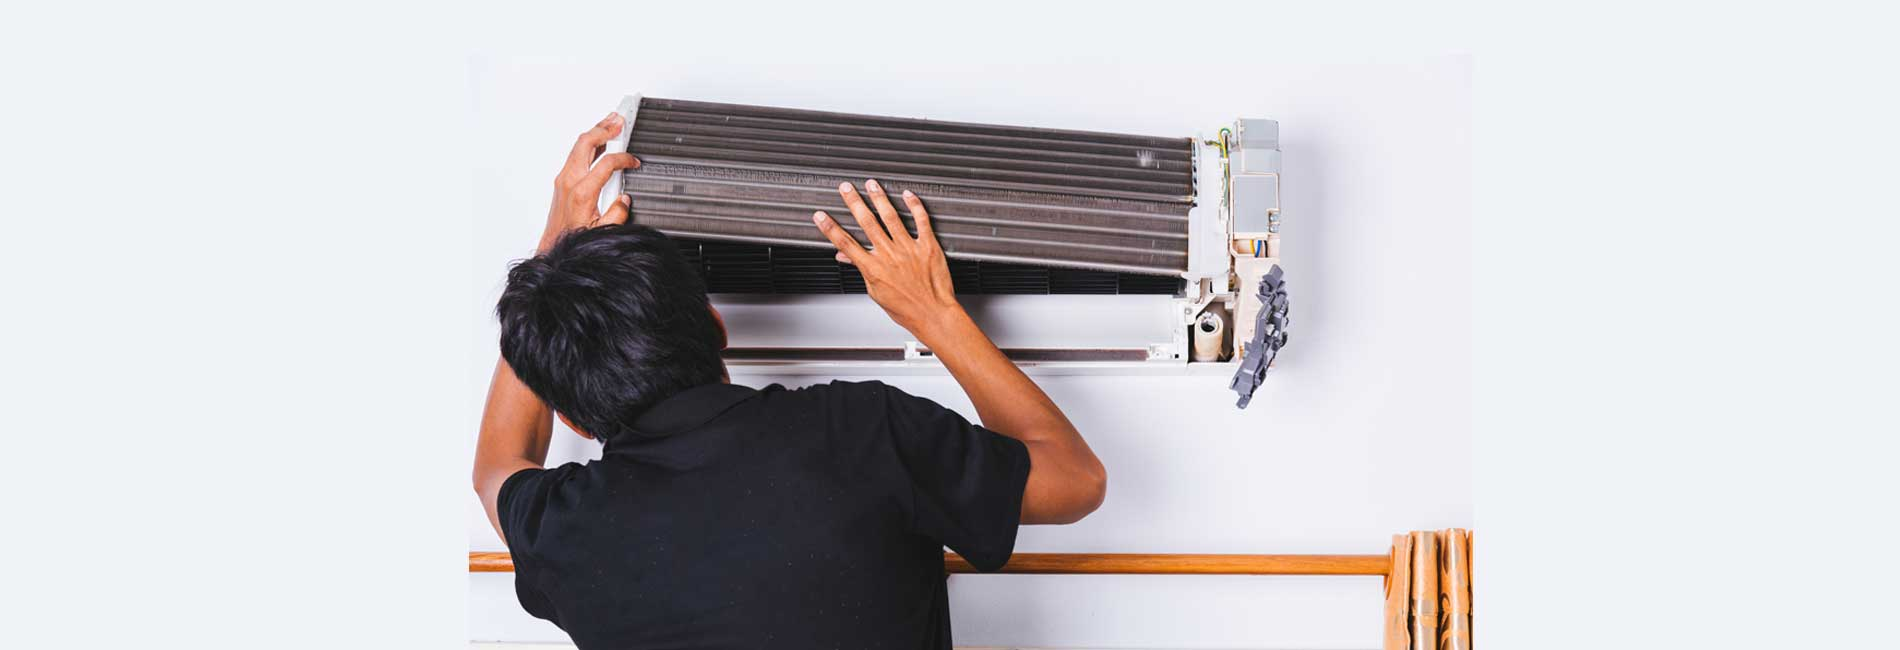 AC Uninstallation in Gopalapuram